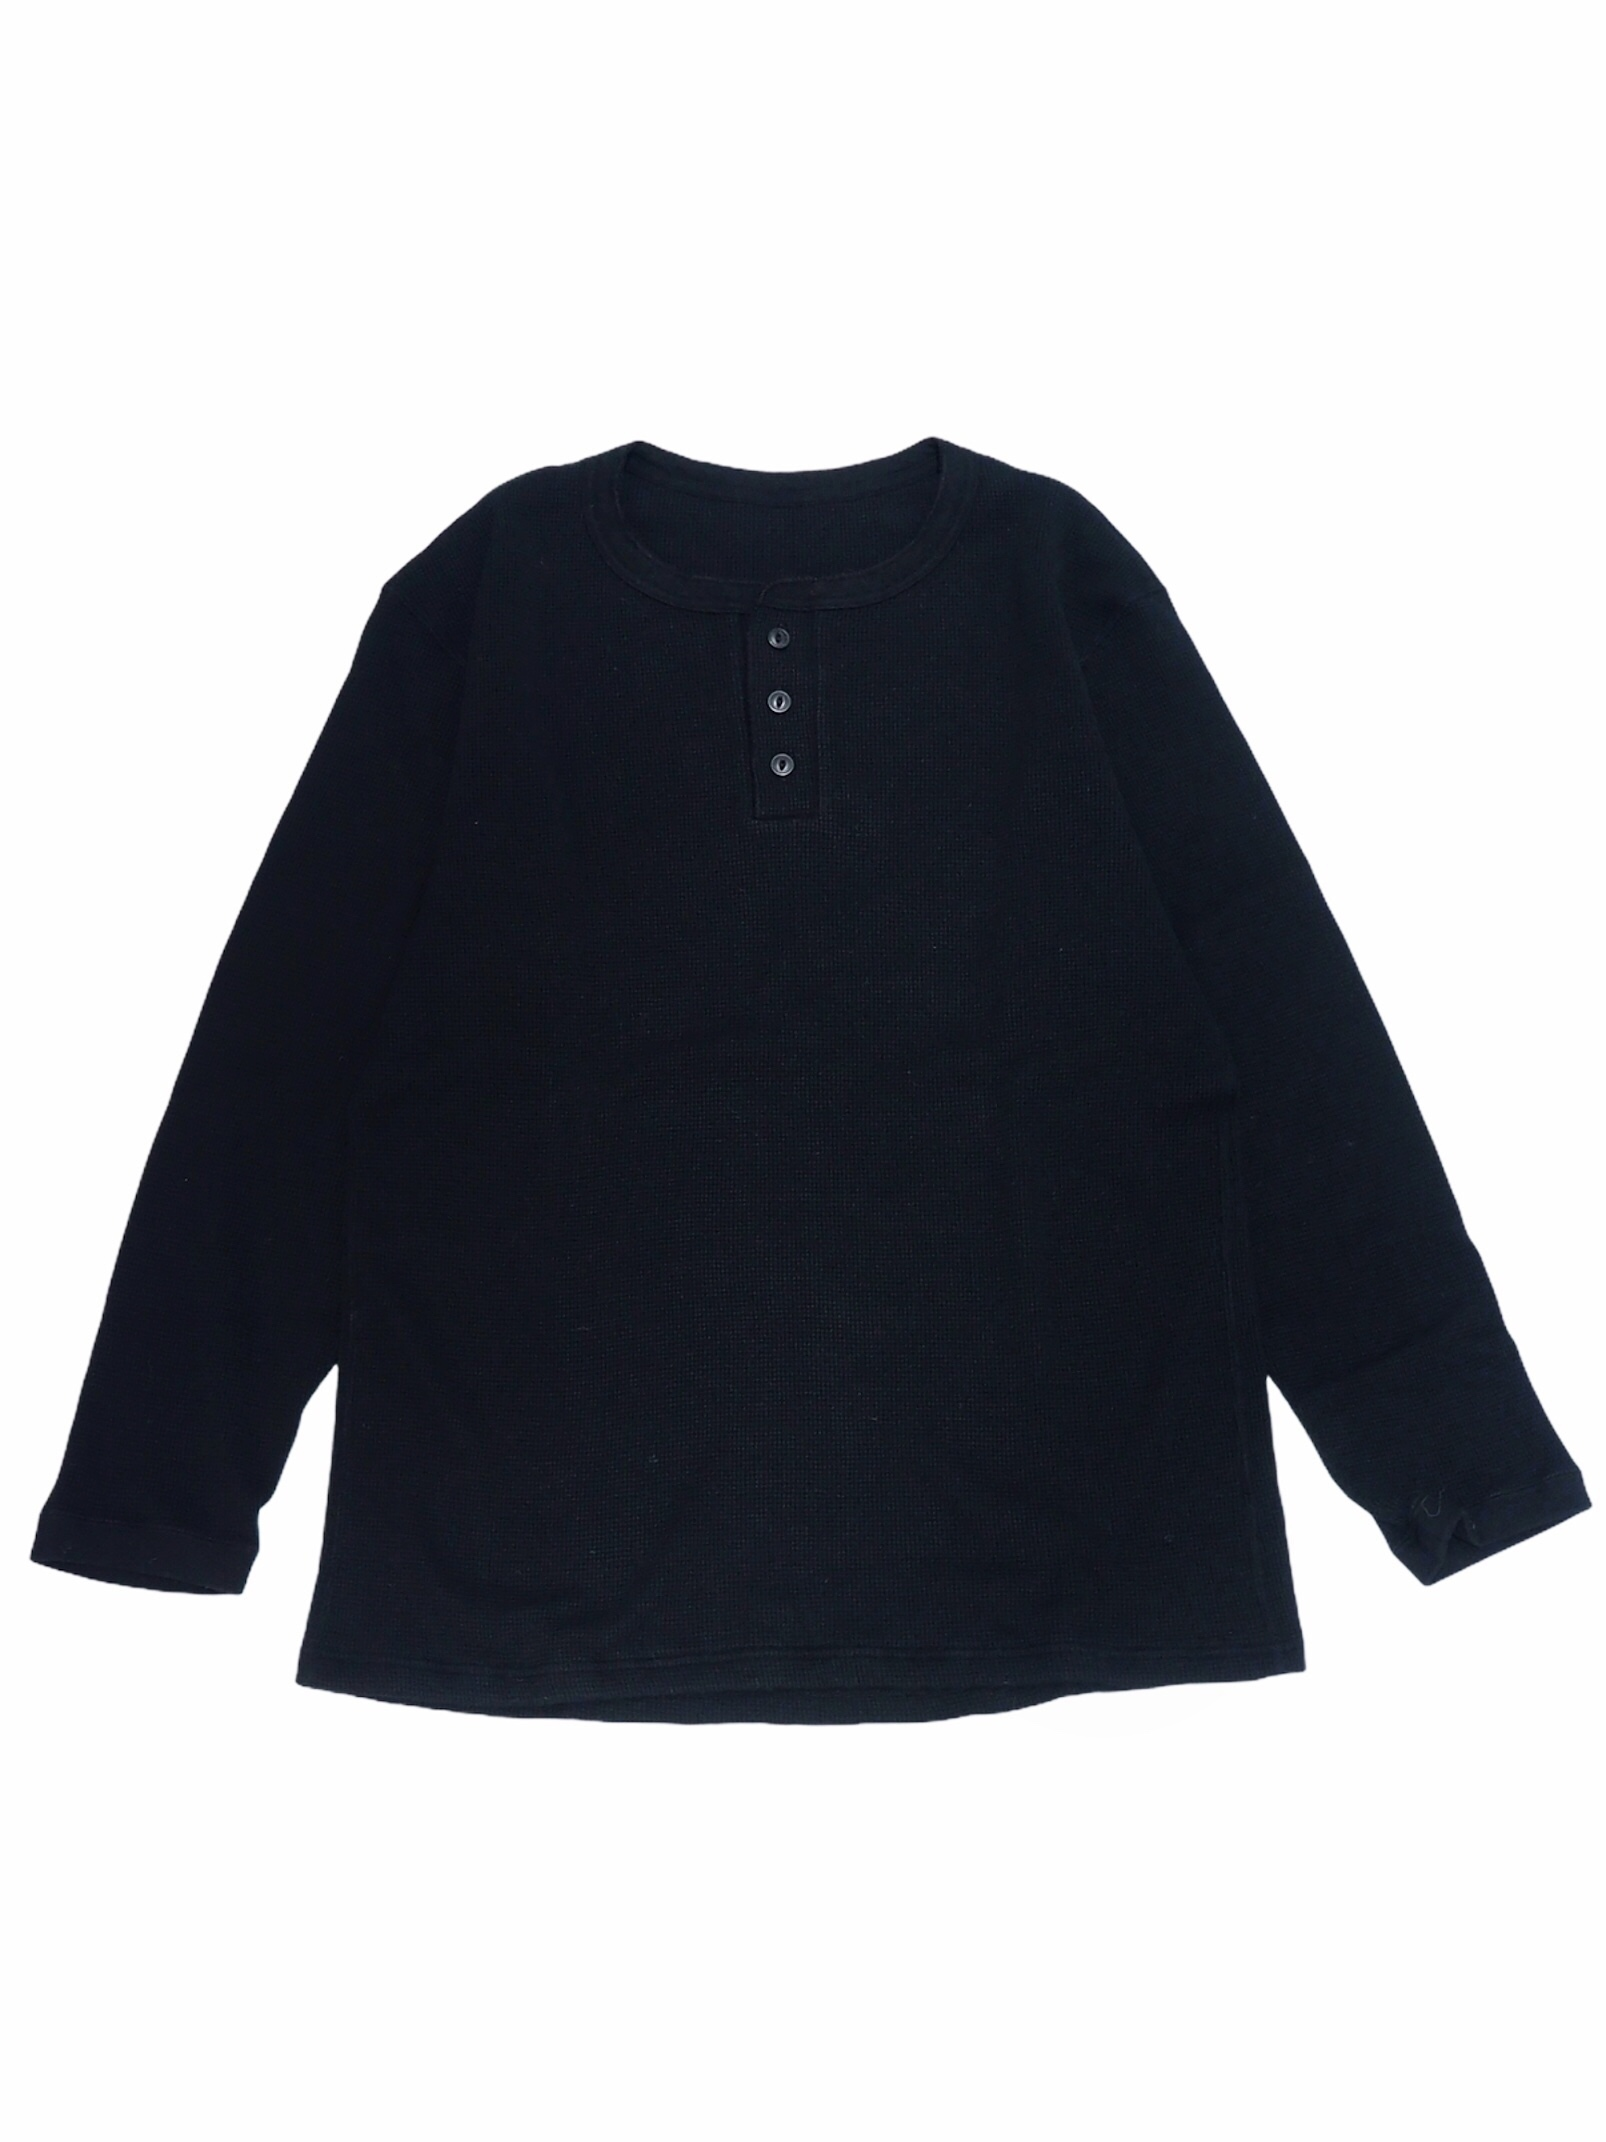 【着もちいい服】F/W FACE THERMAL H/N L/S T-SHIRT